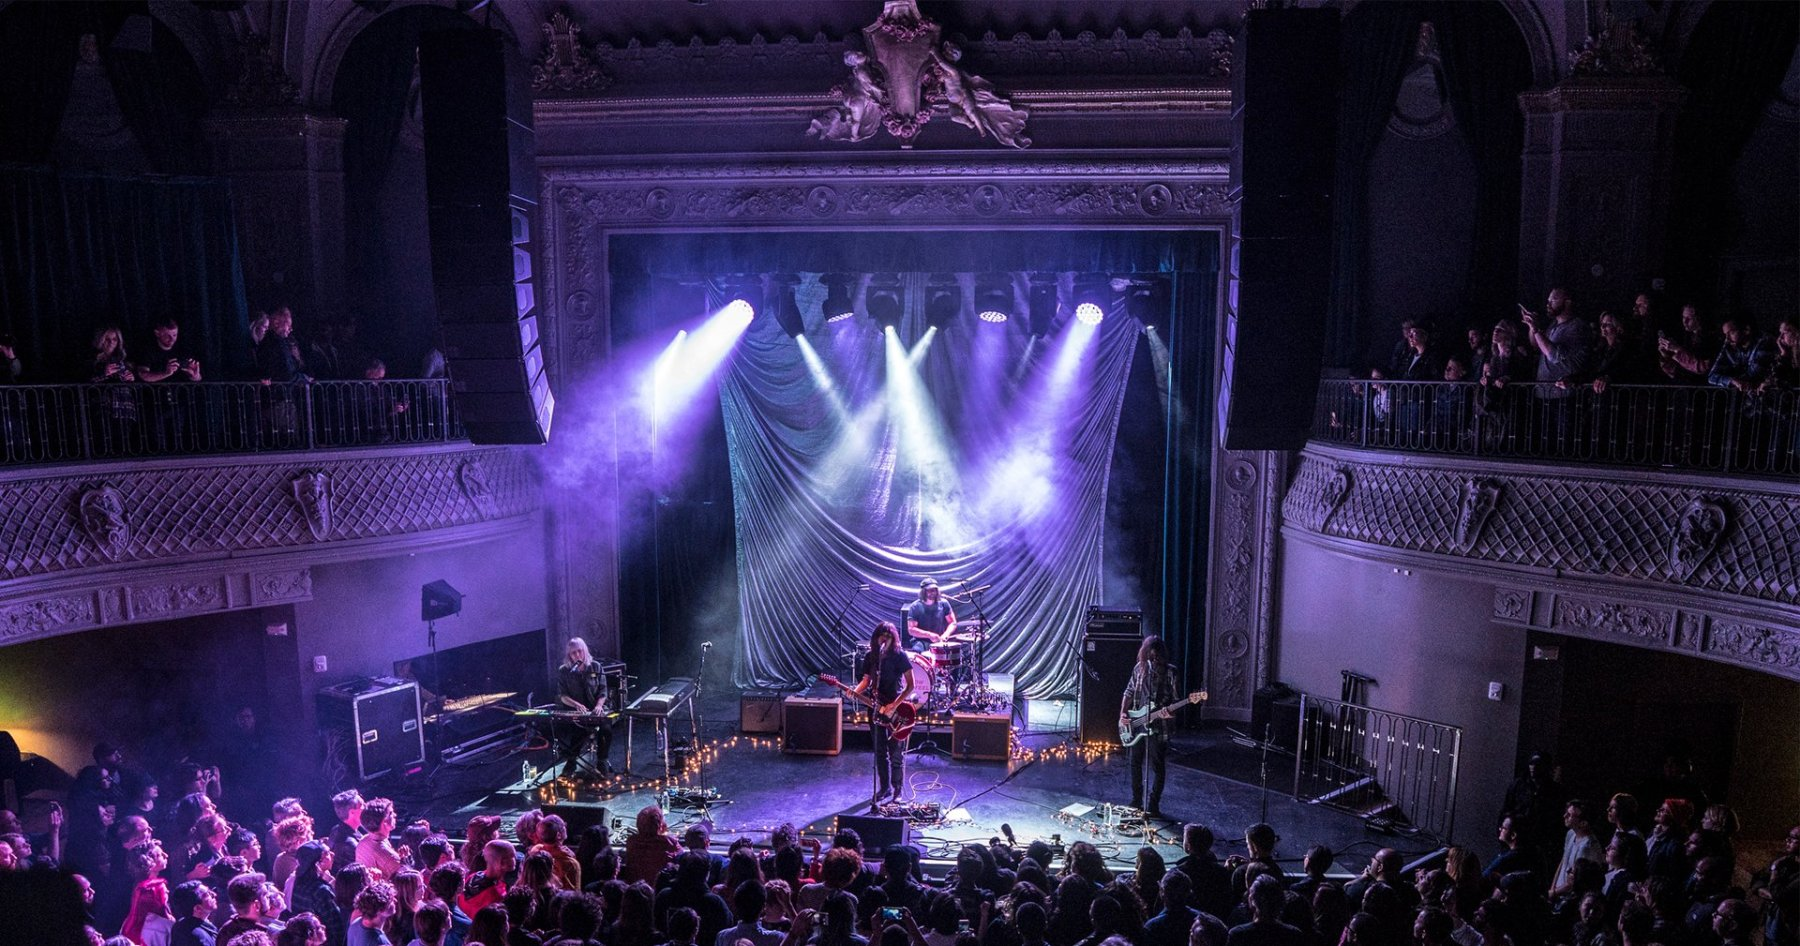 eb299ee16a81 San Francisco 5 Best New Music Venues - InsideHook